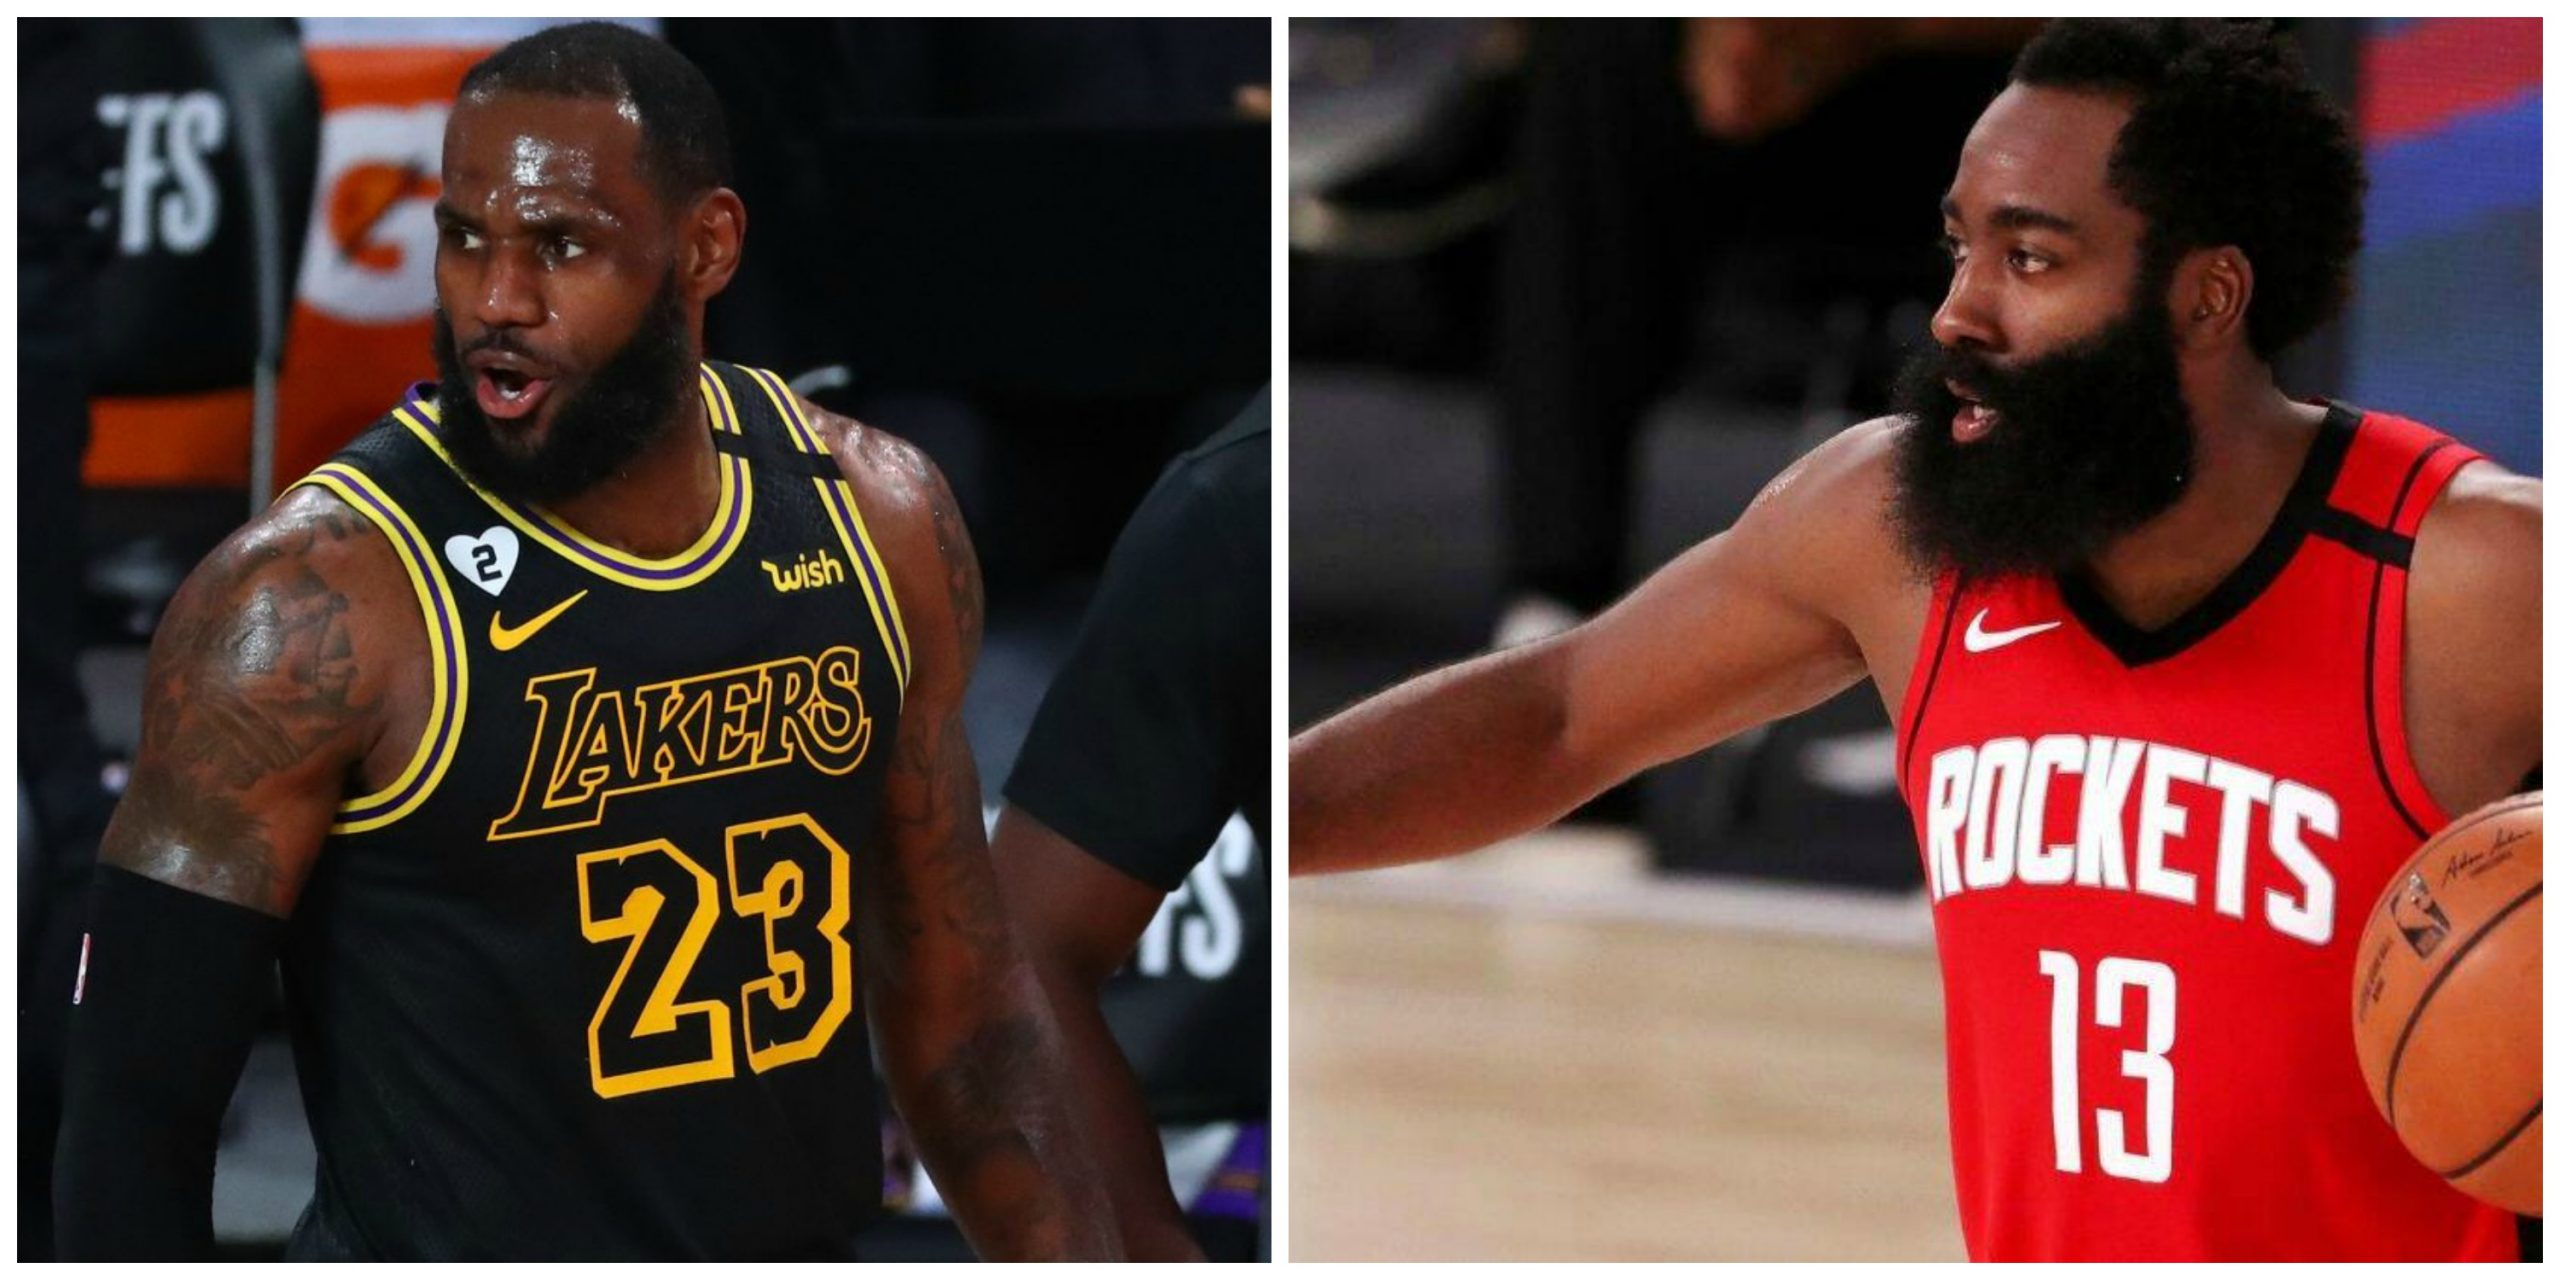 Lakers Versus Rockets in 2020 Western Conference Semifinals